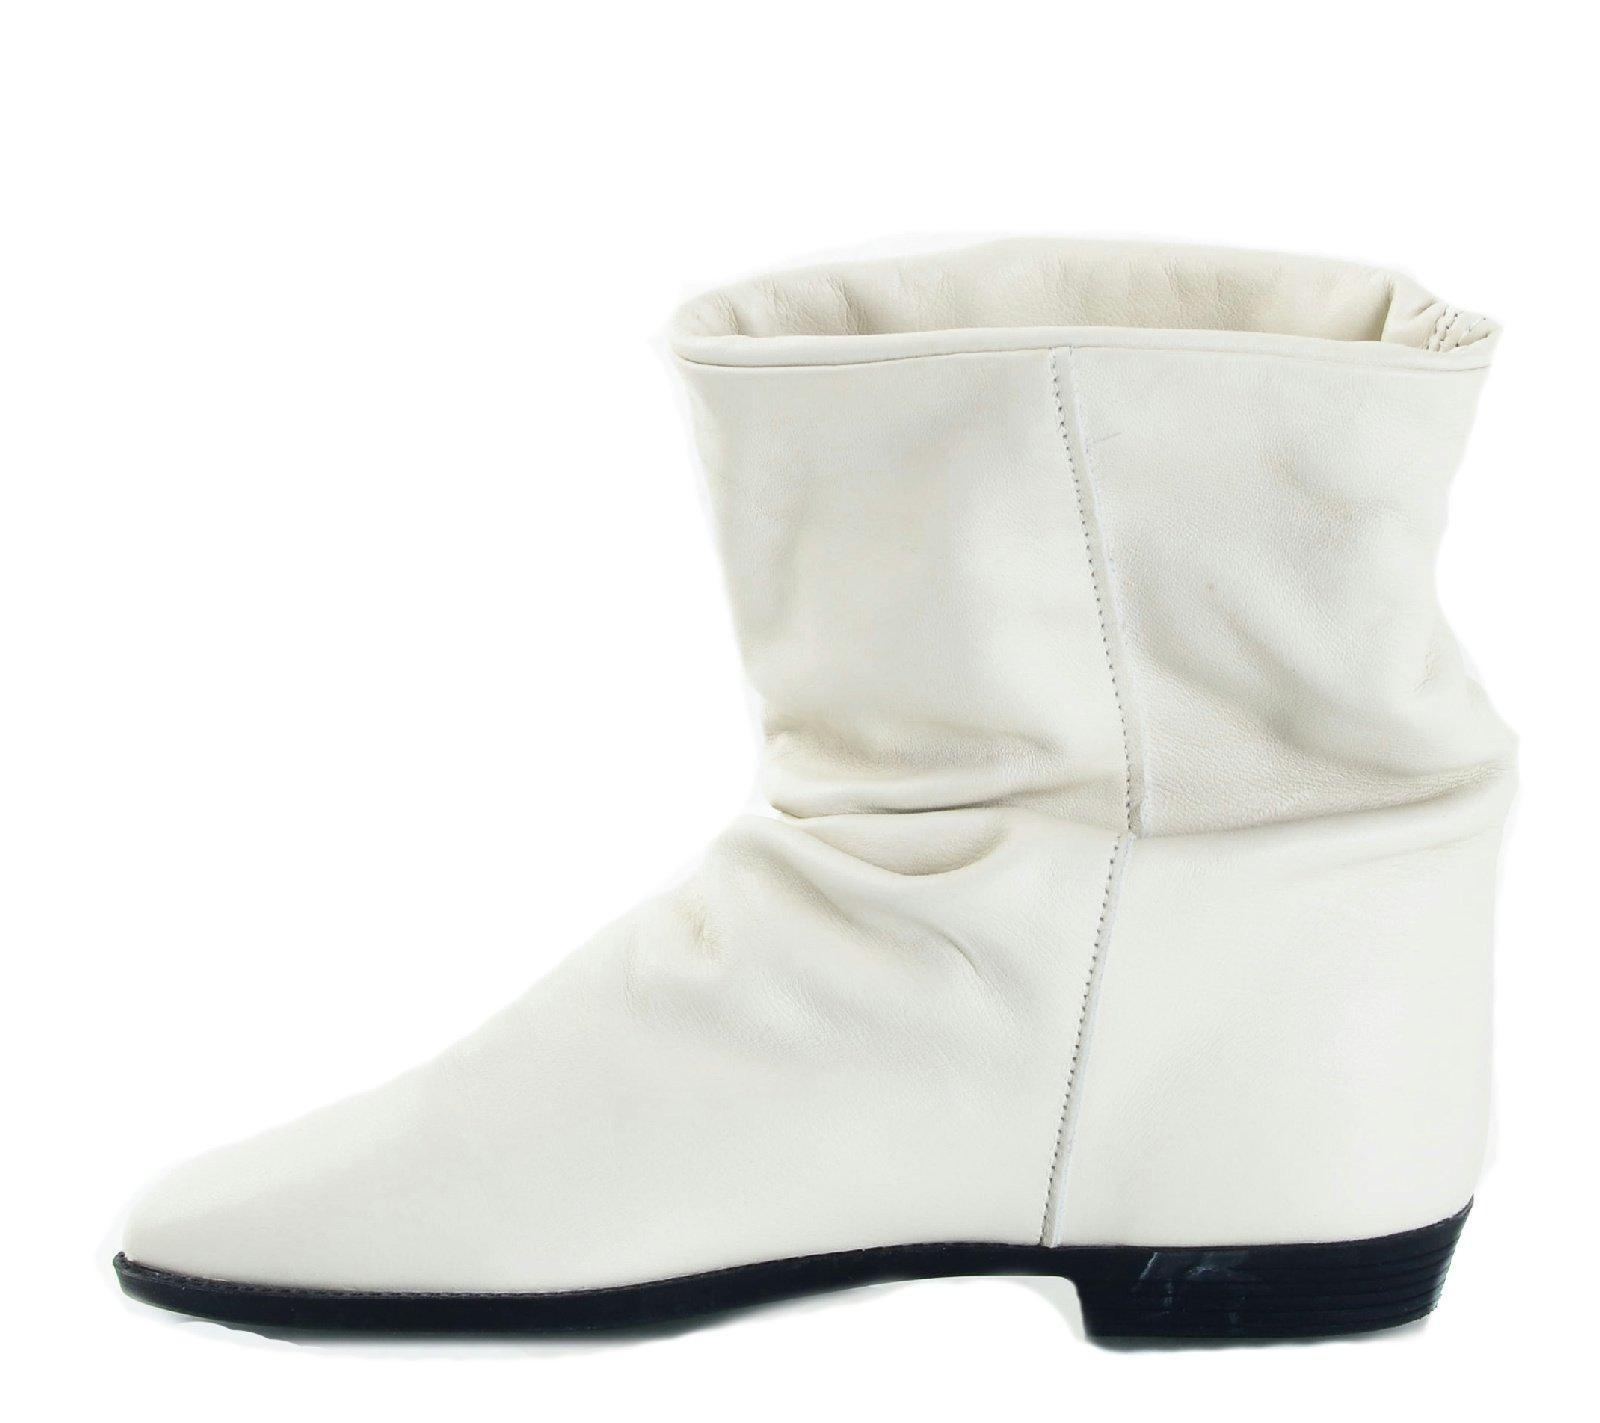 Dexter Women's Juliet Leather Bootie, Winter White, 6